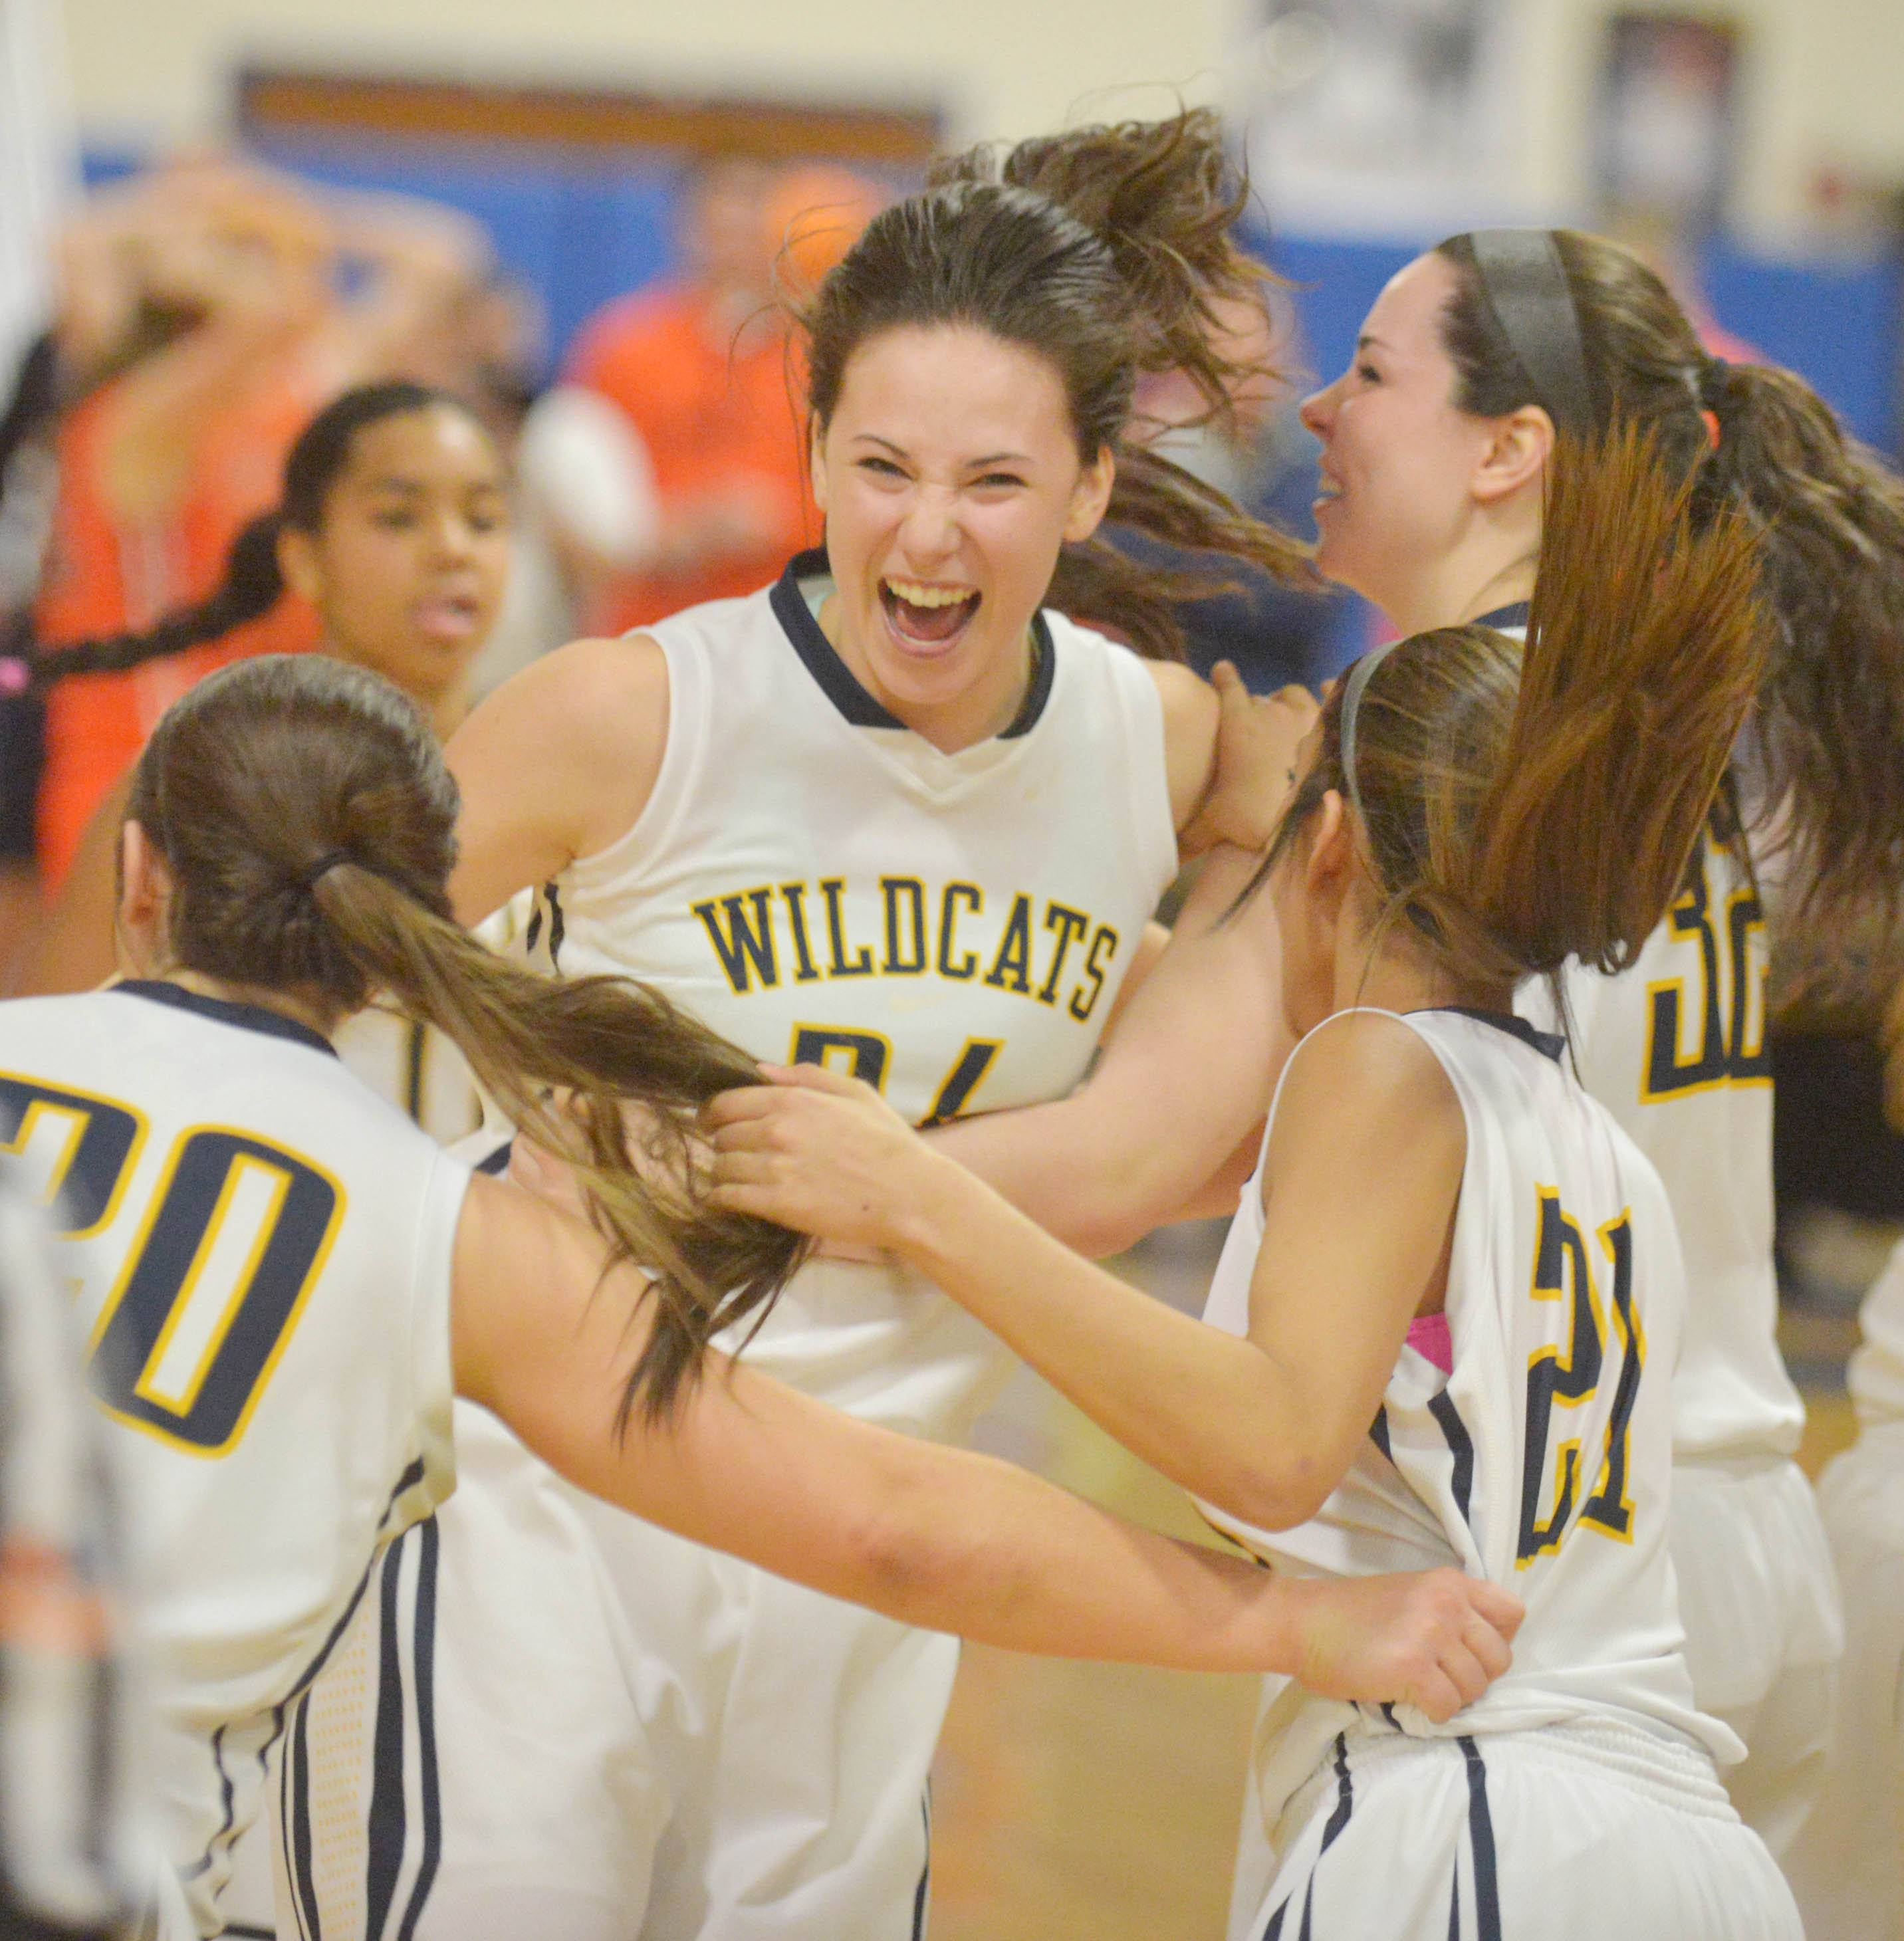 Bryce Menendez of Neuqua Valley smiles after the game. She was bing hugged by Niki Lazar , Kiran Rehal, and Gwen Berglind.